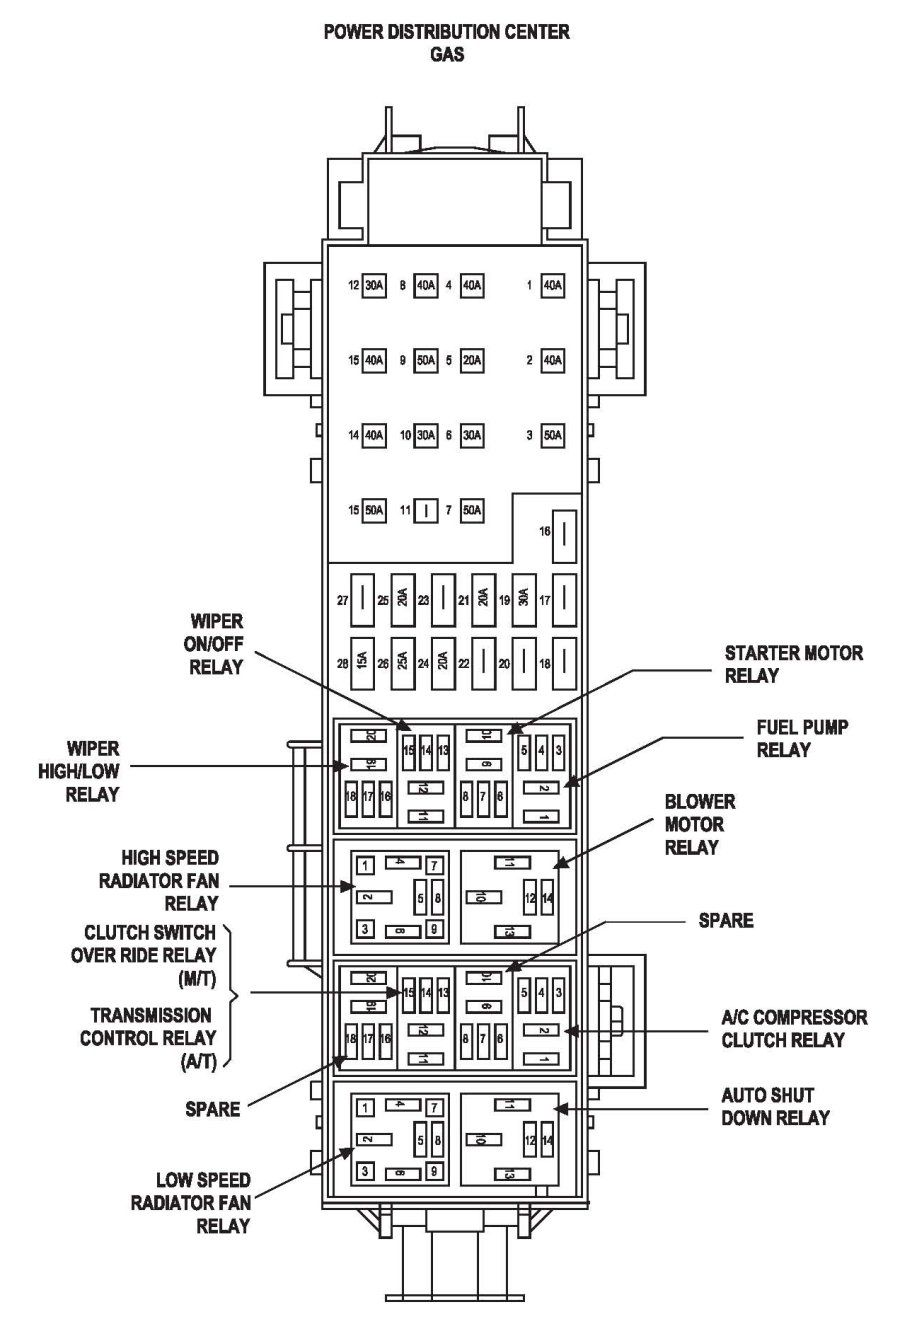 hight resolution of jeep liberty fuse box diagram image details jeep liberty fuse box diagram 2002 f450 fuse box diagram